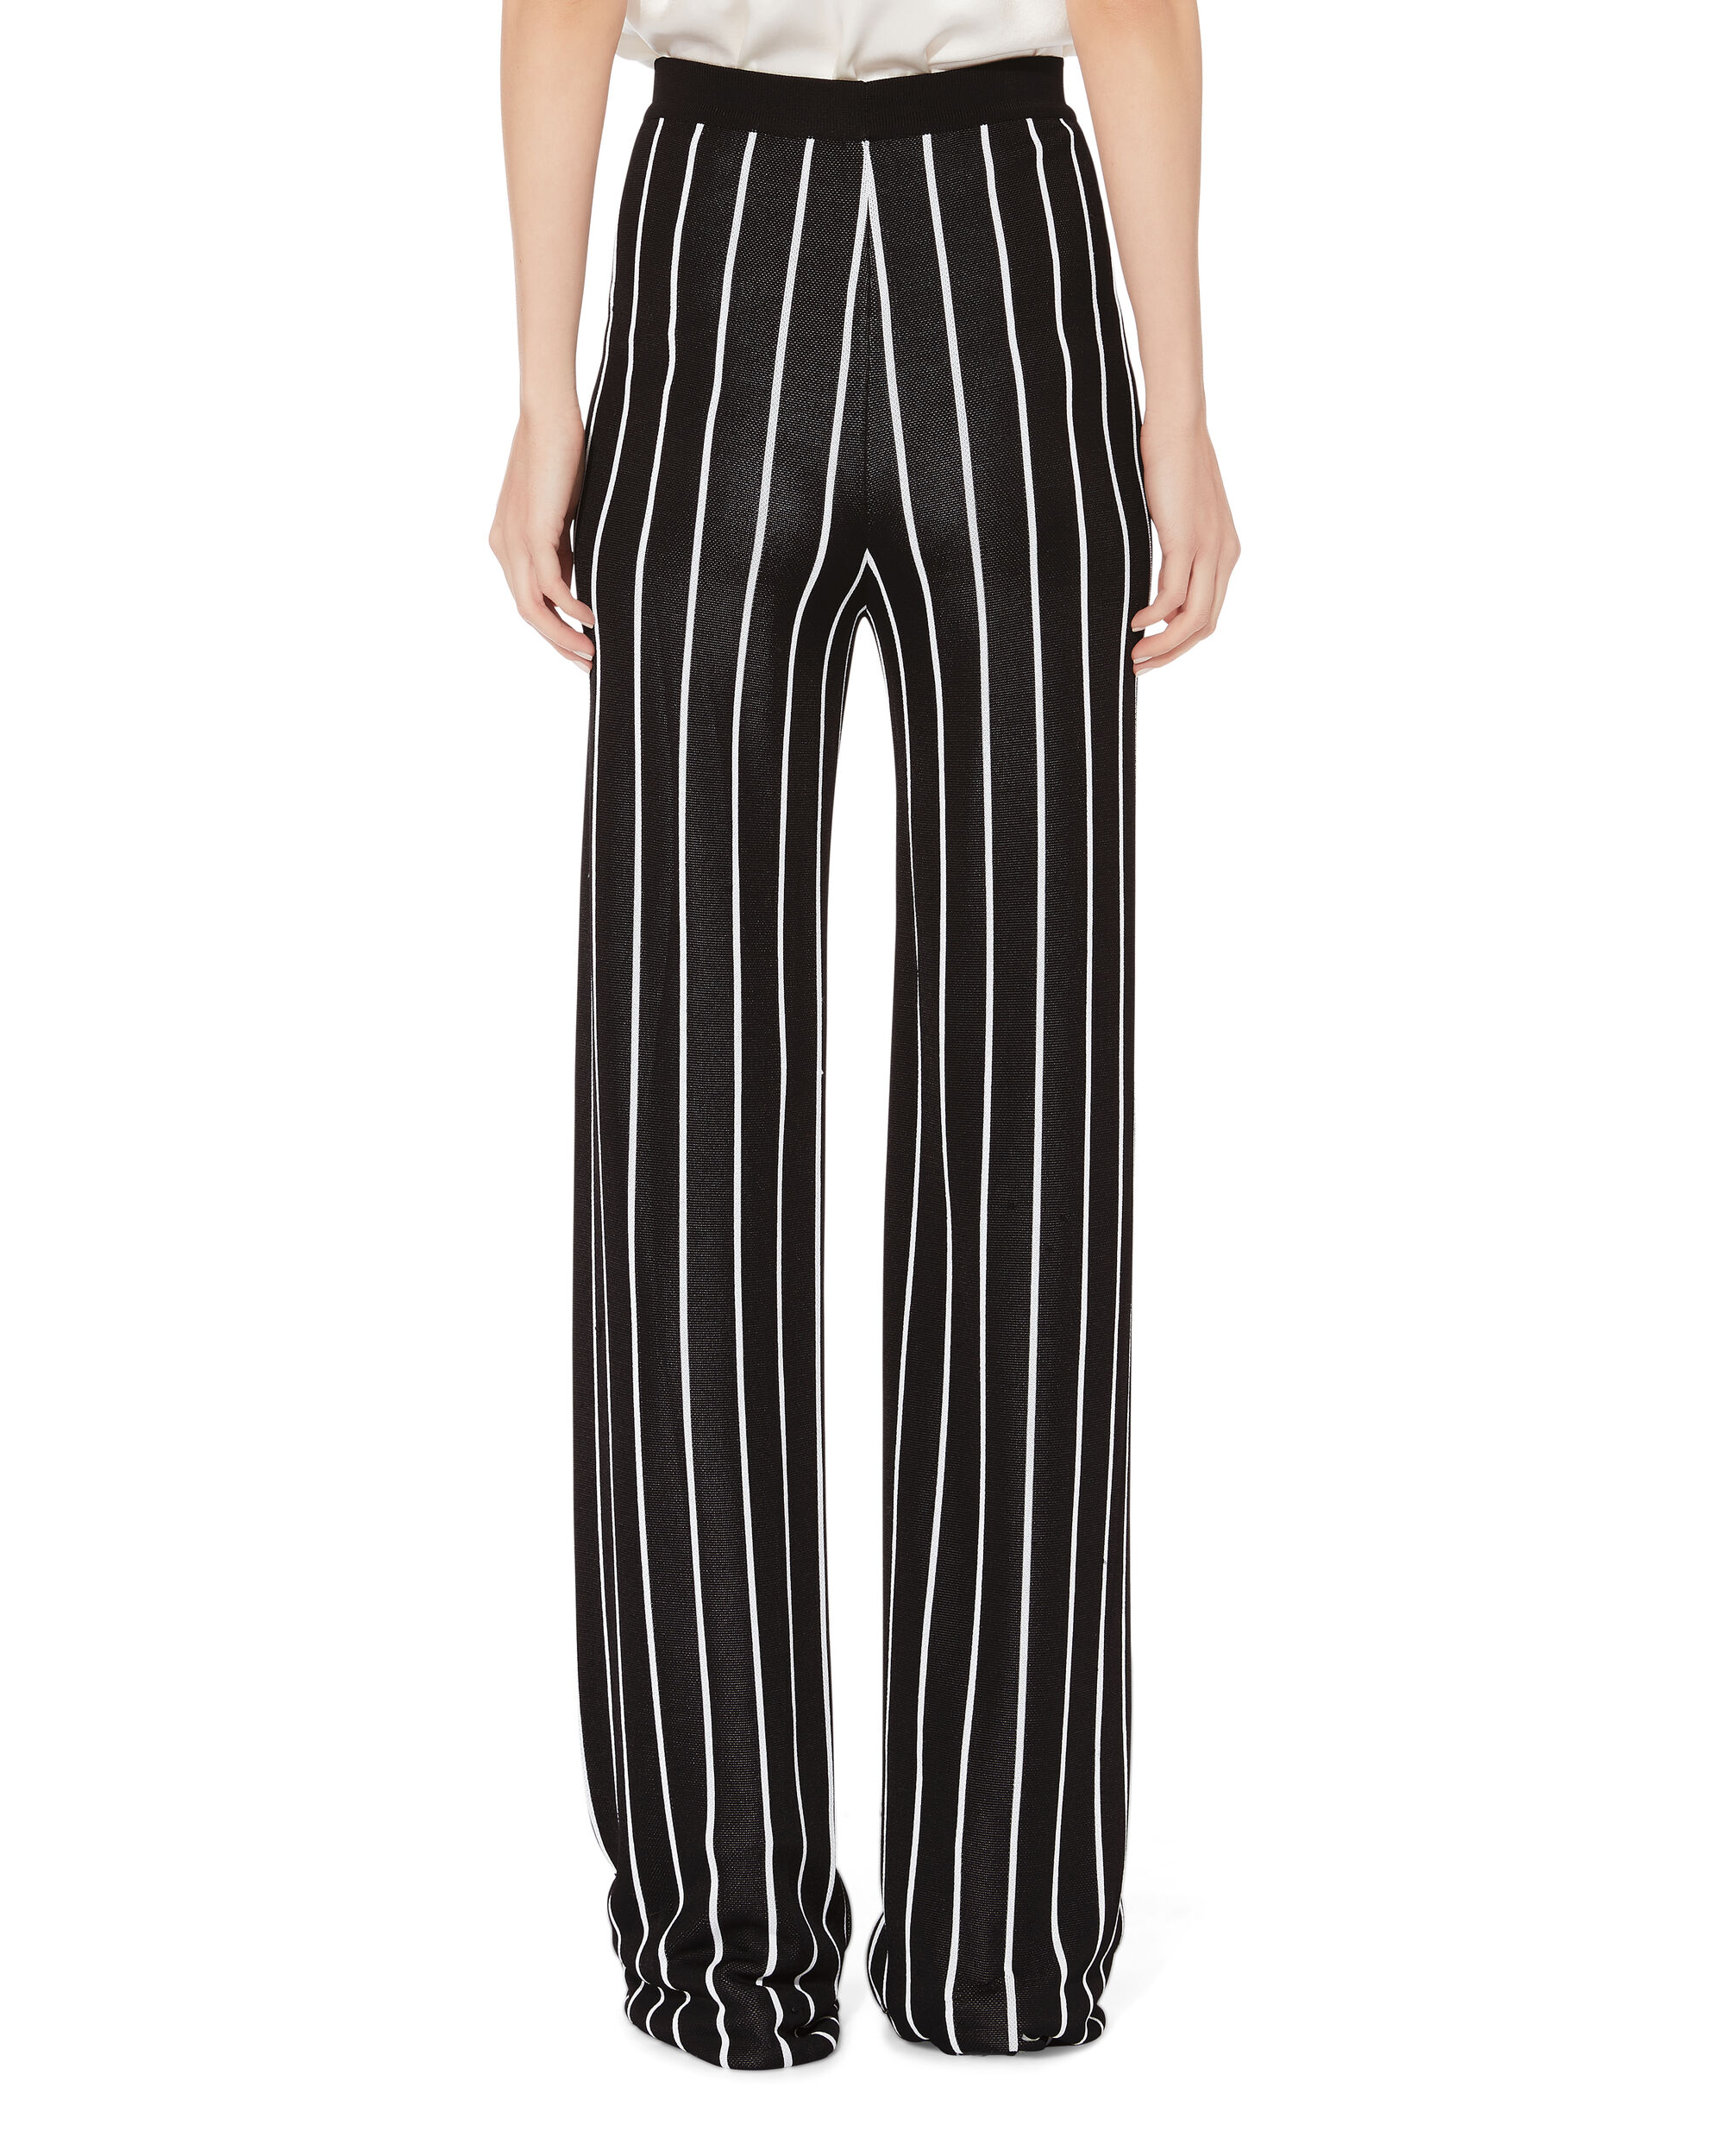 High Waist Striped Pants, BLK/WHT, hi-res